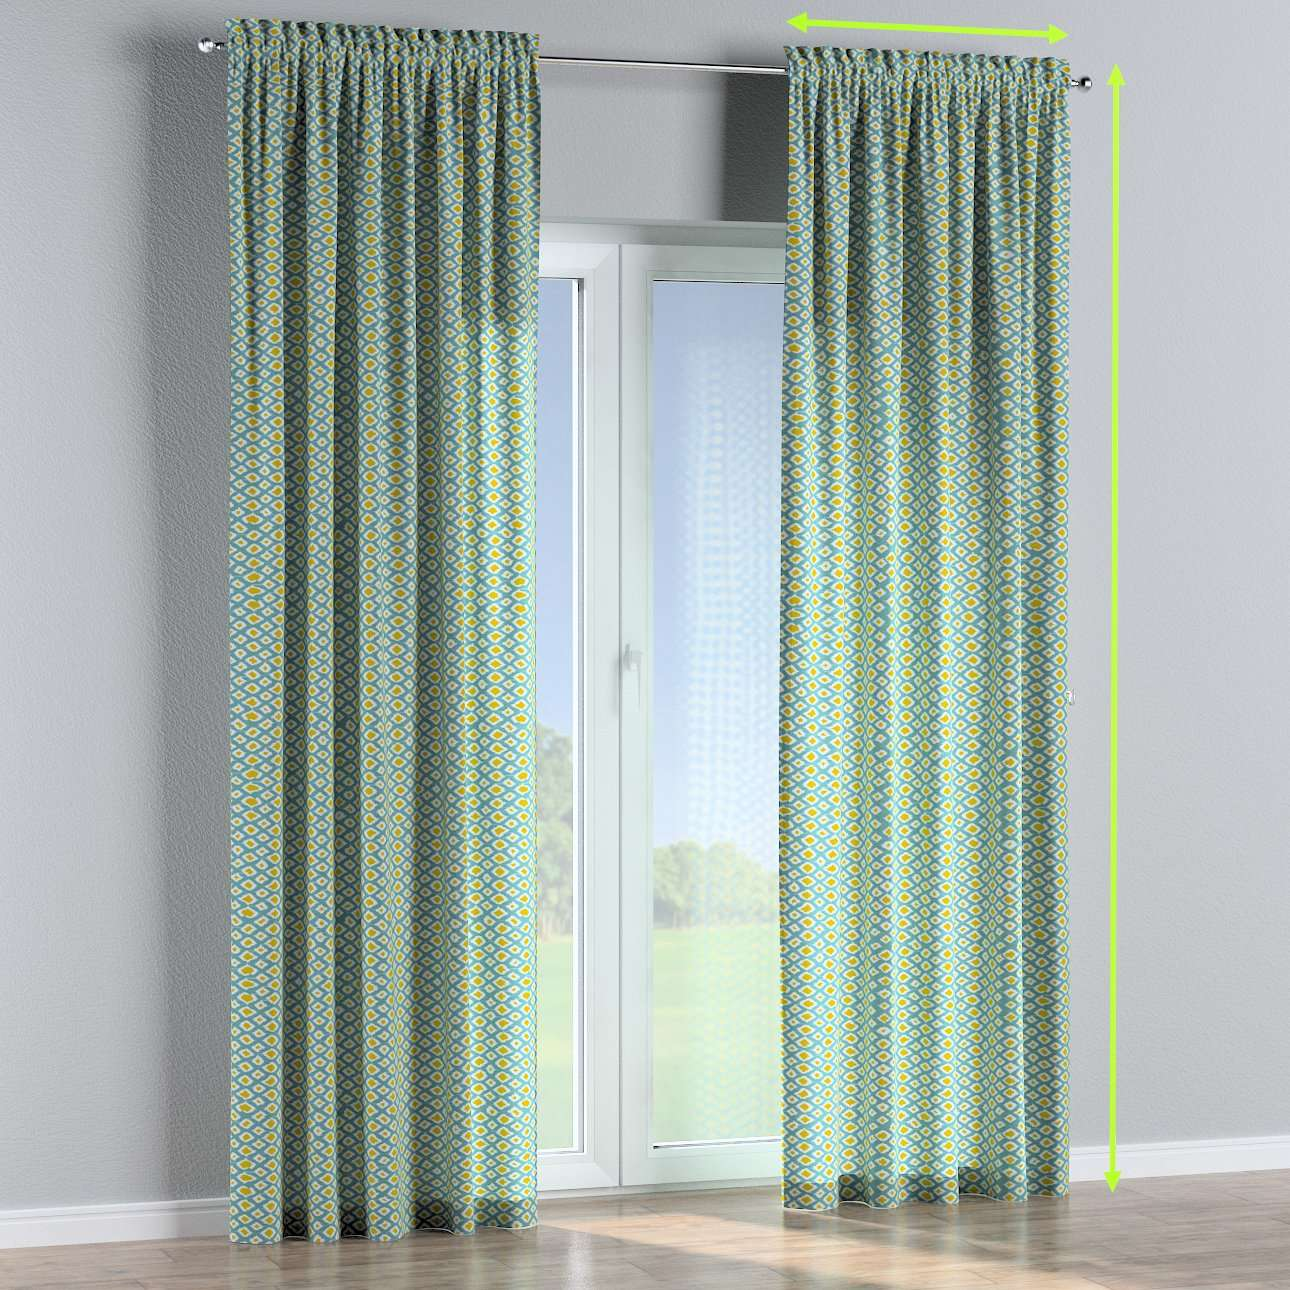 Slot and frill lined curtains in collection Comic Book & Geo Prints, fabric: 141-20